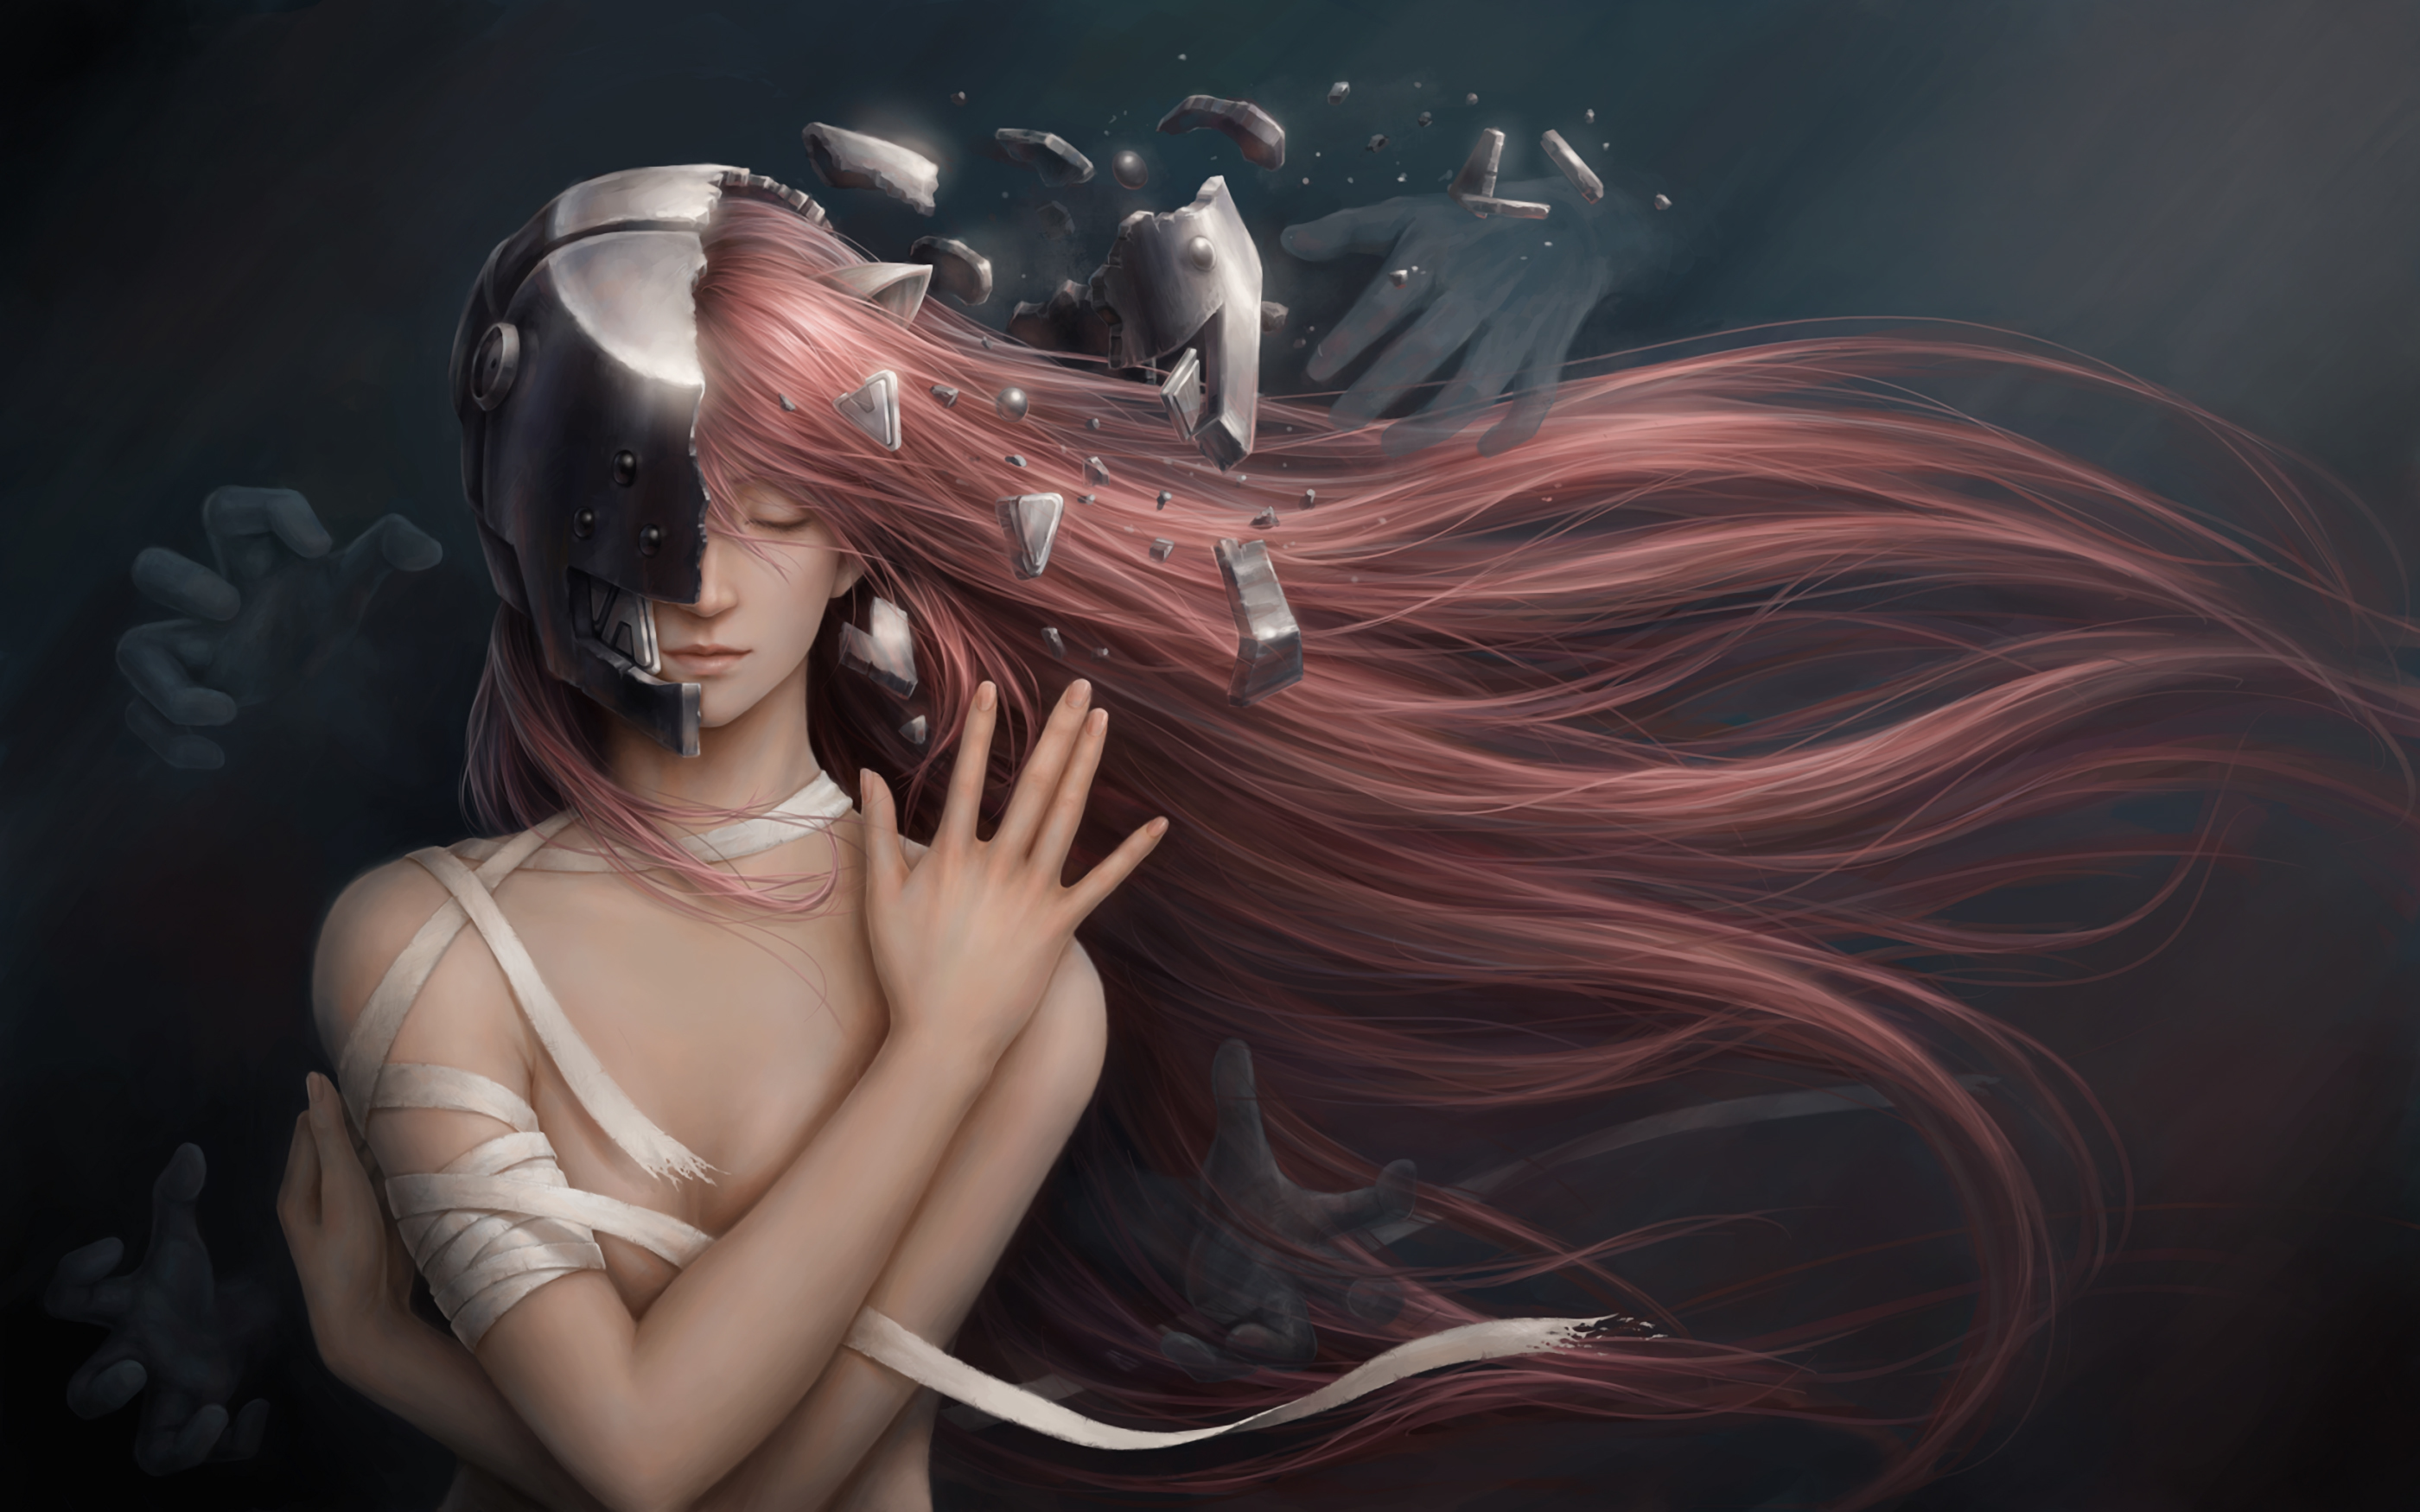 Home decoration jason peng elfen lied lucy girl red hair anime Silk Fabric Poster Print XD021